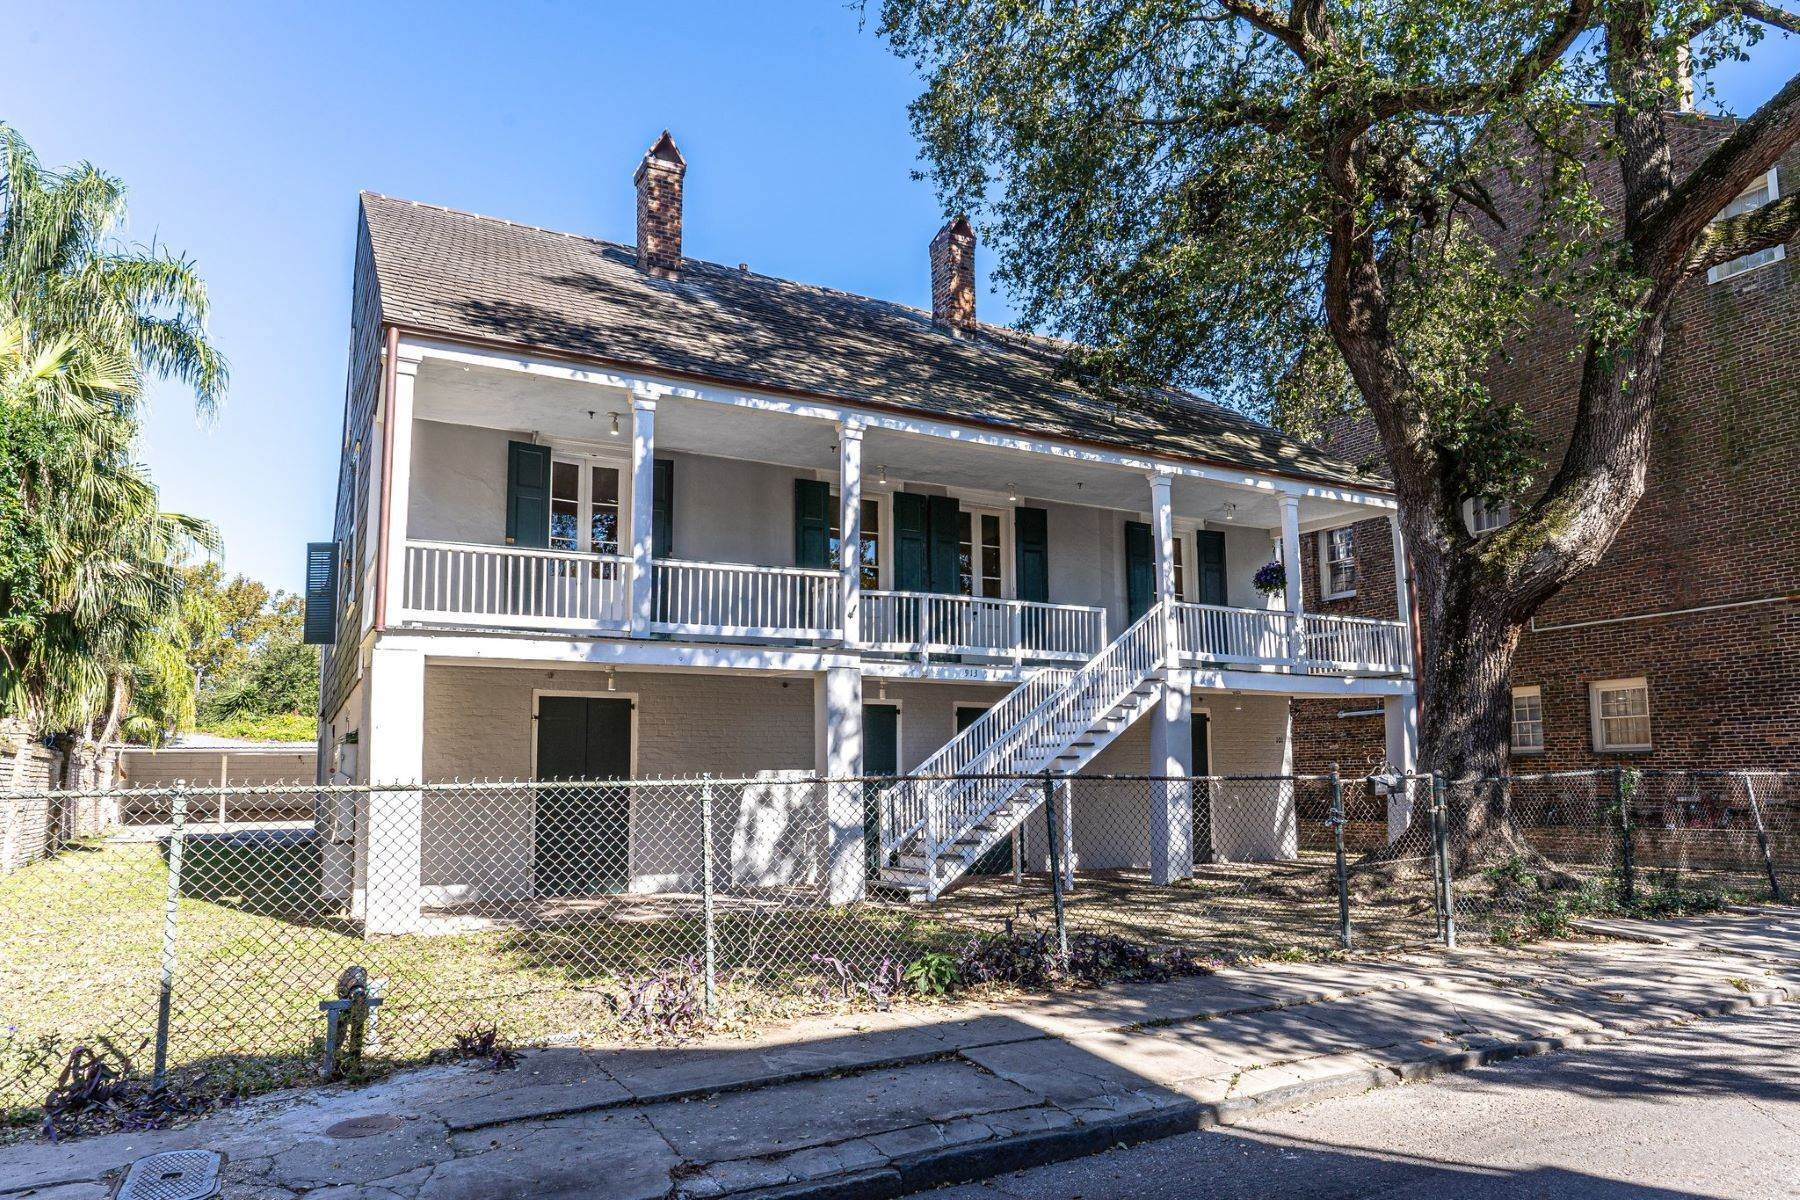 Condominiums for Sale at 913 Governor Nicholls St #201 New Orleans, Louisiana 70116 United States